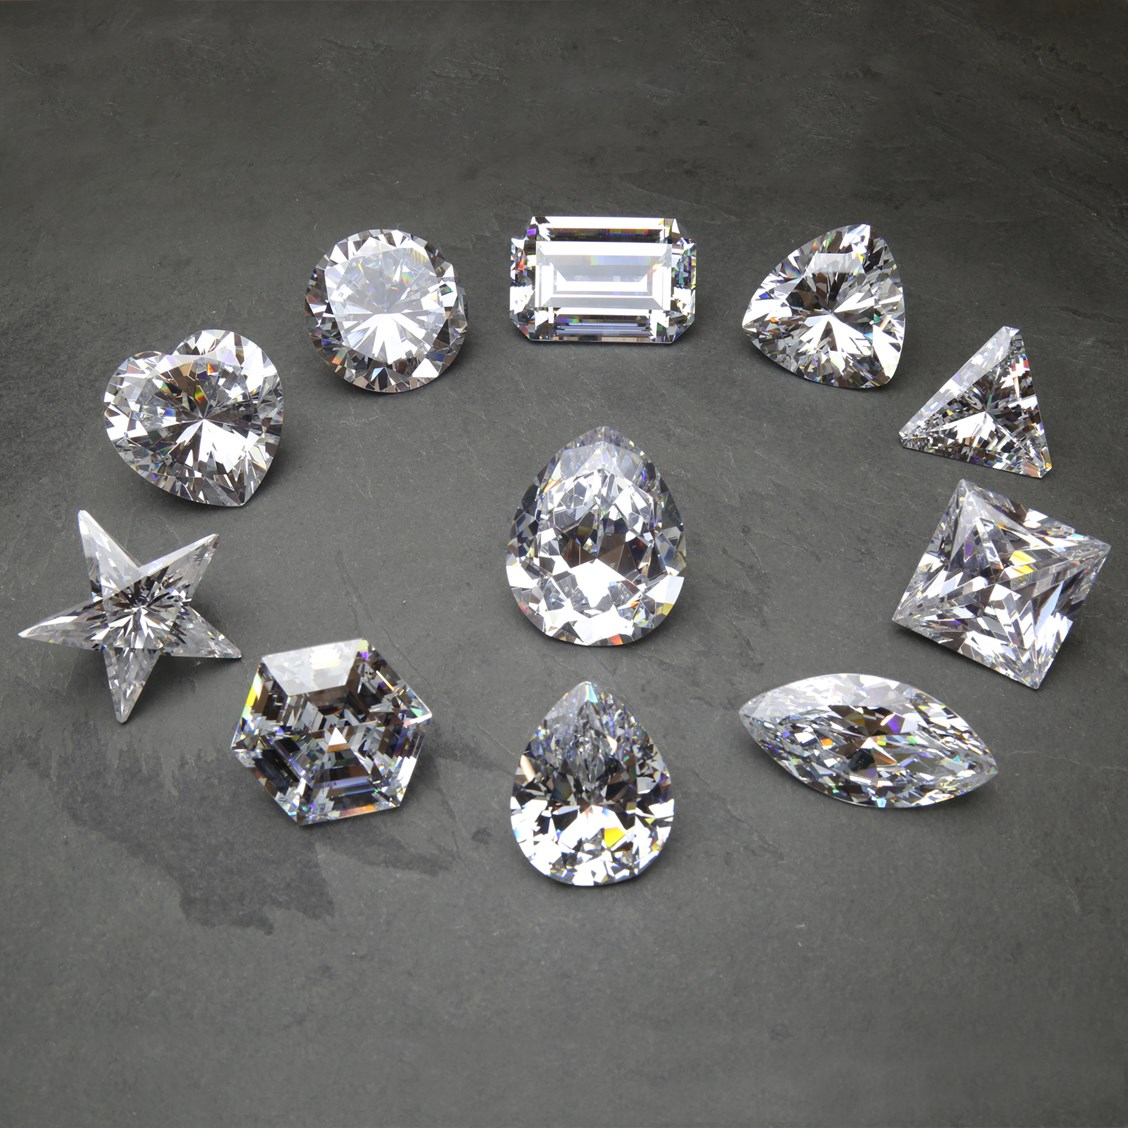 Image result for When the world's largest diamond was transported from America to england